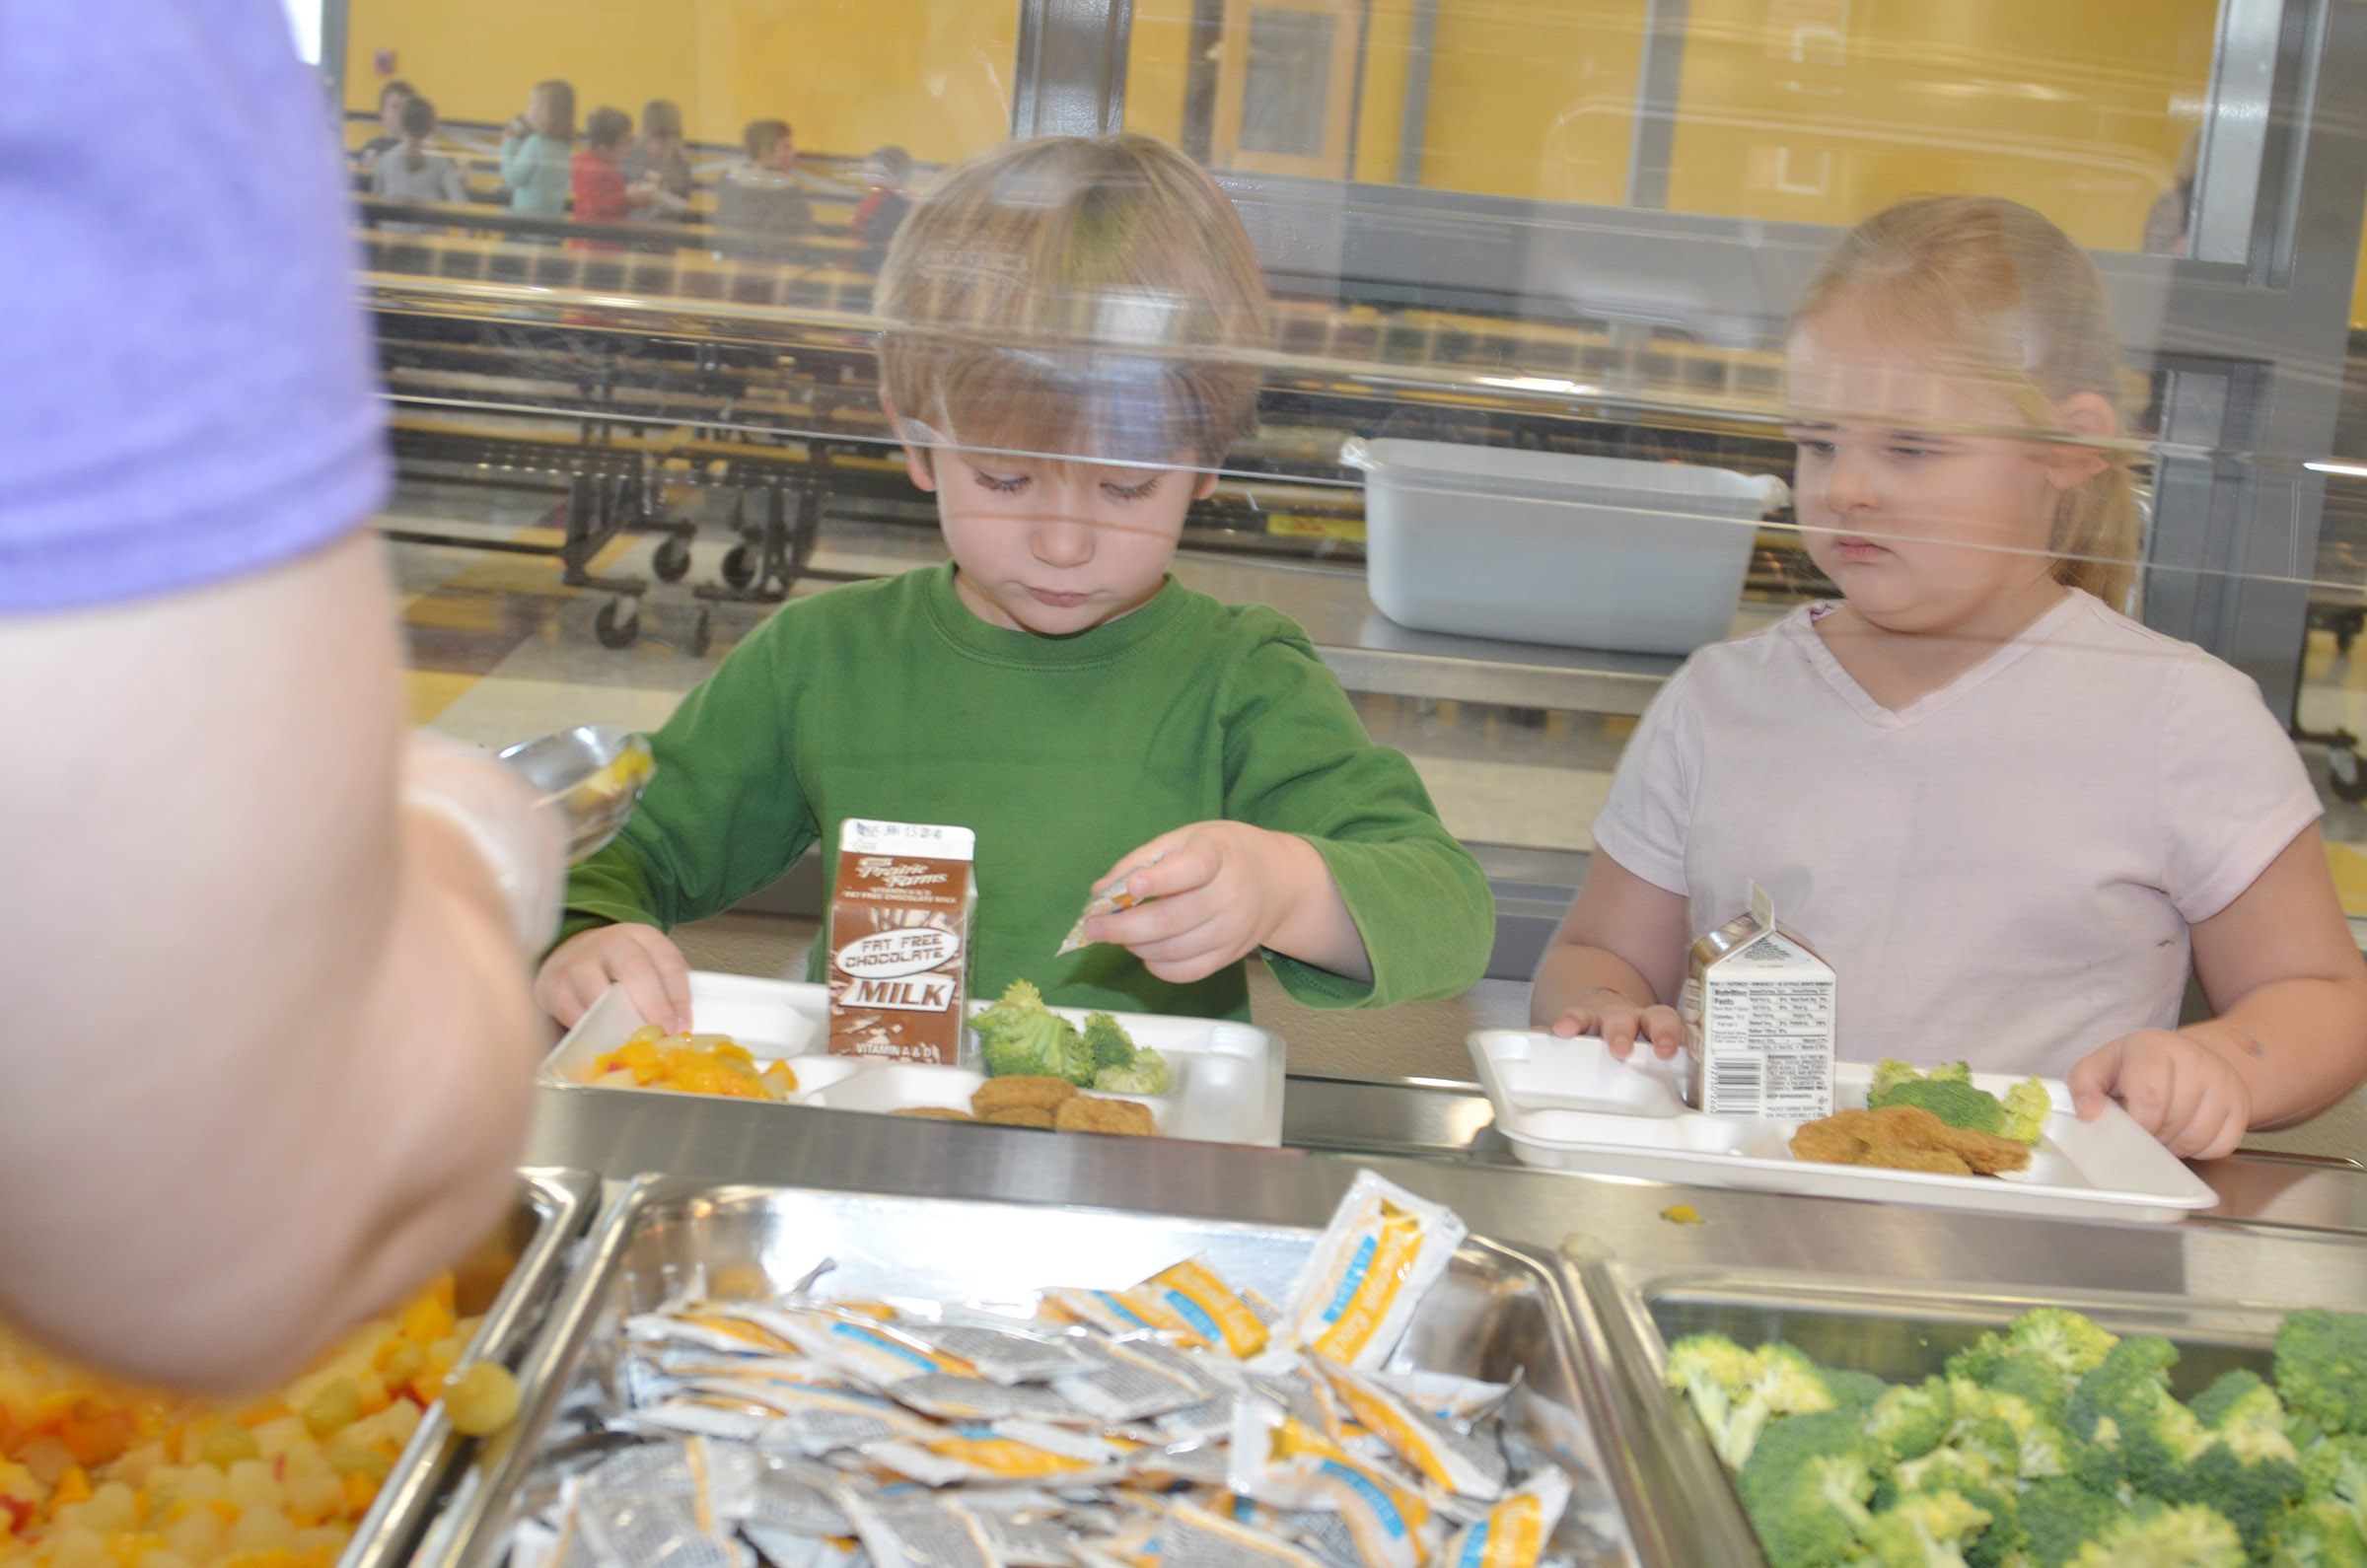 CES kindergartener Luke Banta picks up some ranch dressing in the serving line as he uses the school's new cafeteria for the first time.